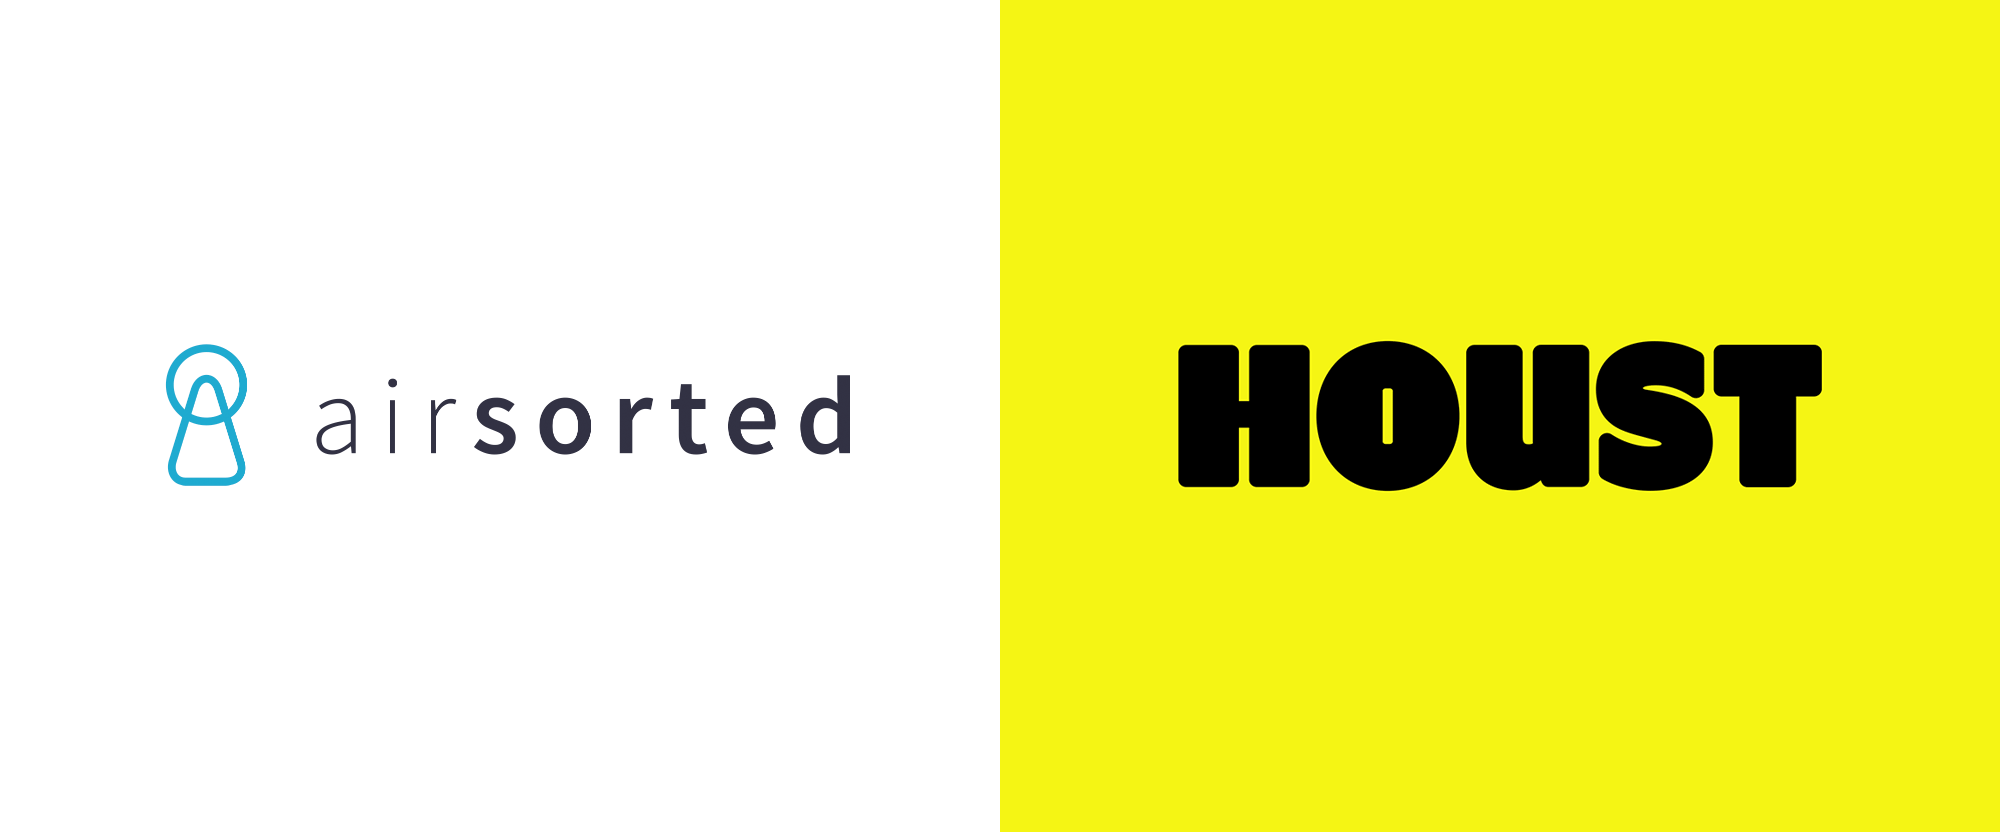 New Name, Logo, and Identity for Houst by Ragged Edge